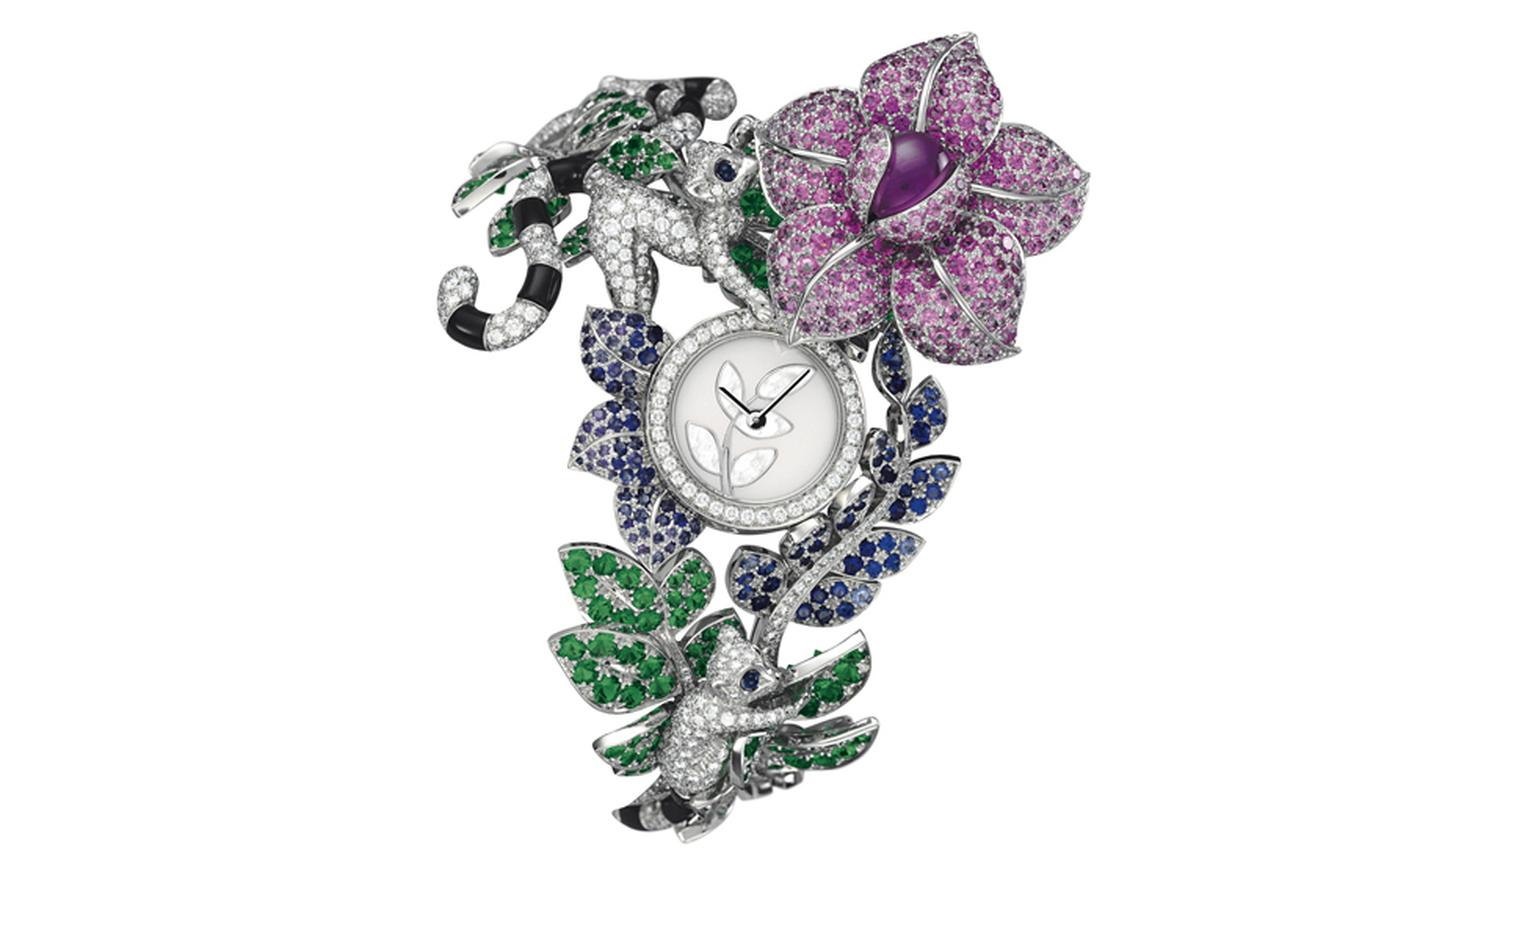 Van Cleef & Arpels Les Voyages Extraordinaires High Jewellery Timepieces Decor Makis, open